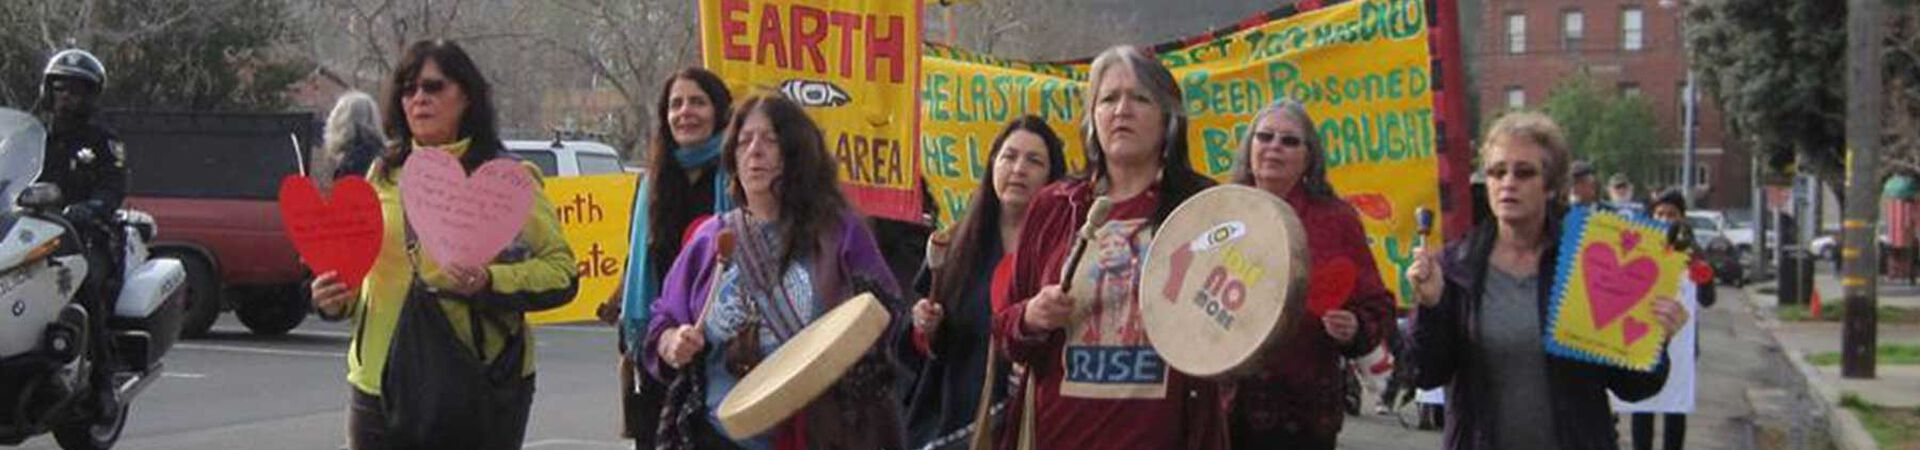 Banner - Women's Earth and Climate Caucus